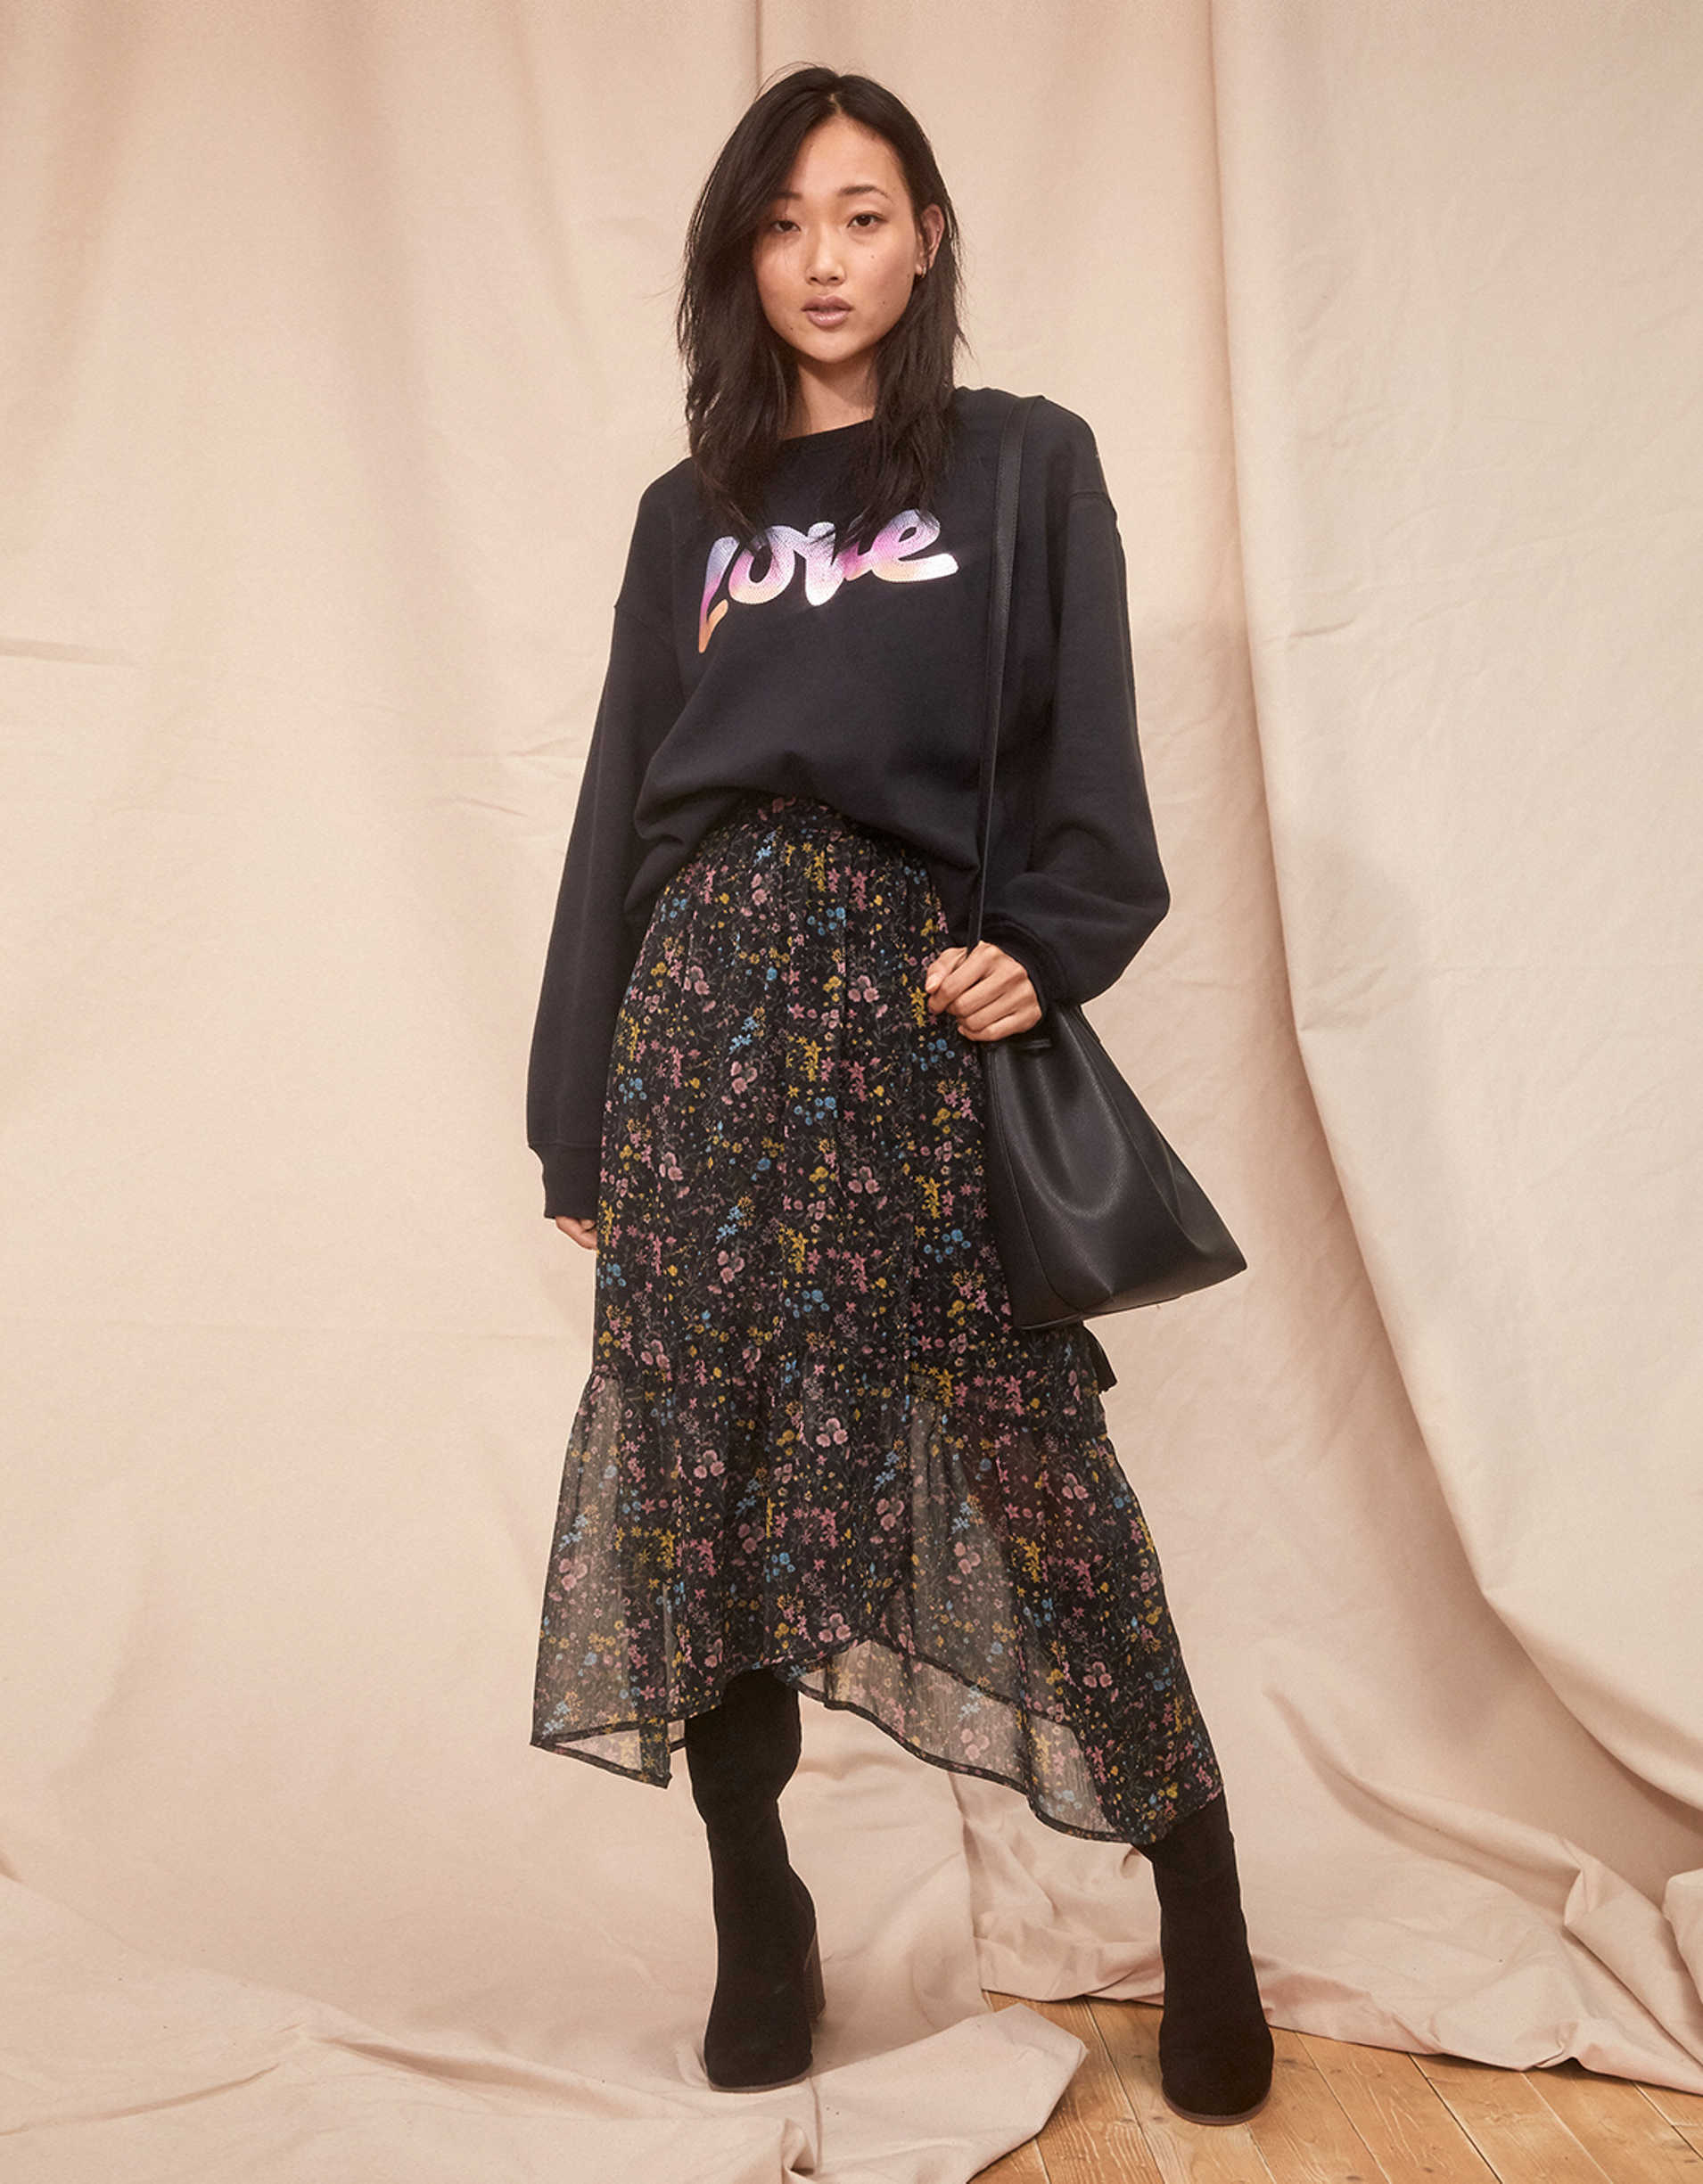 AE Studio Oversized Crew Neck Sweatshirt